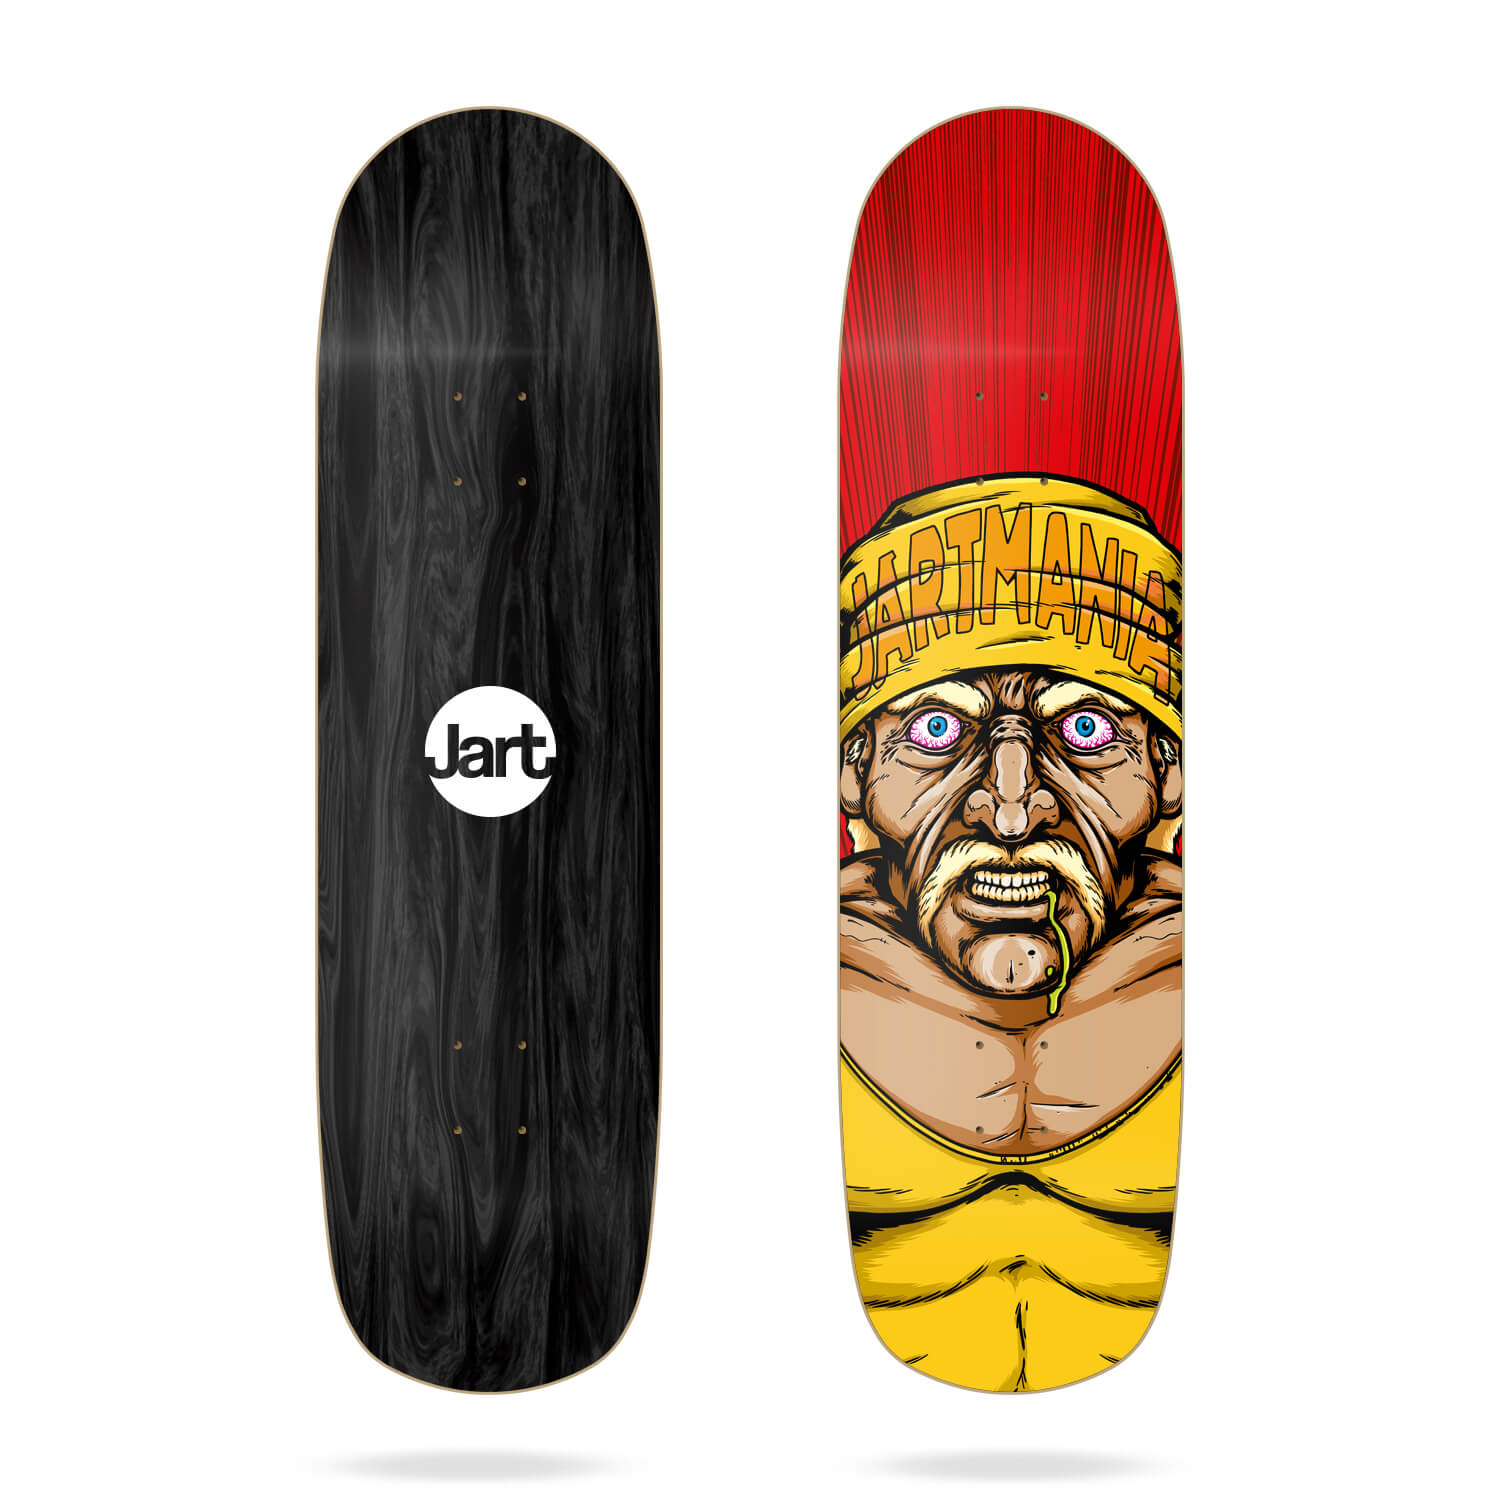 "Jart Hulk Hogan 8.5"" Pool Before Death deck"